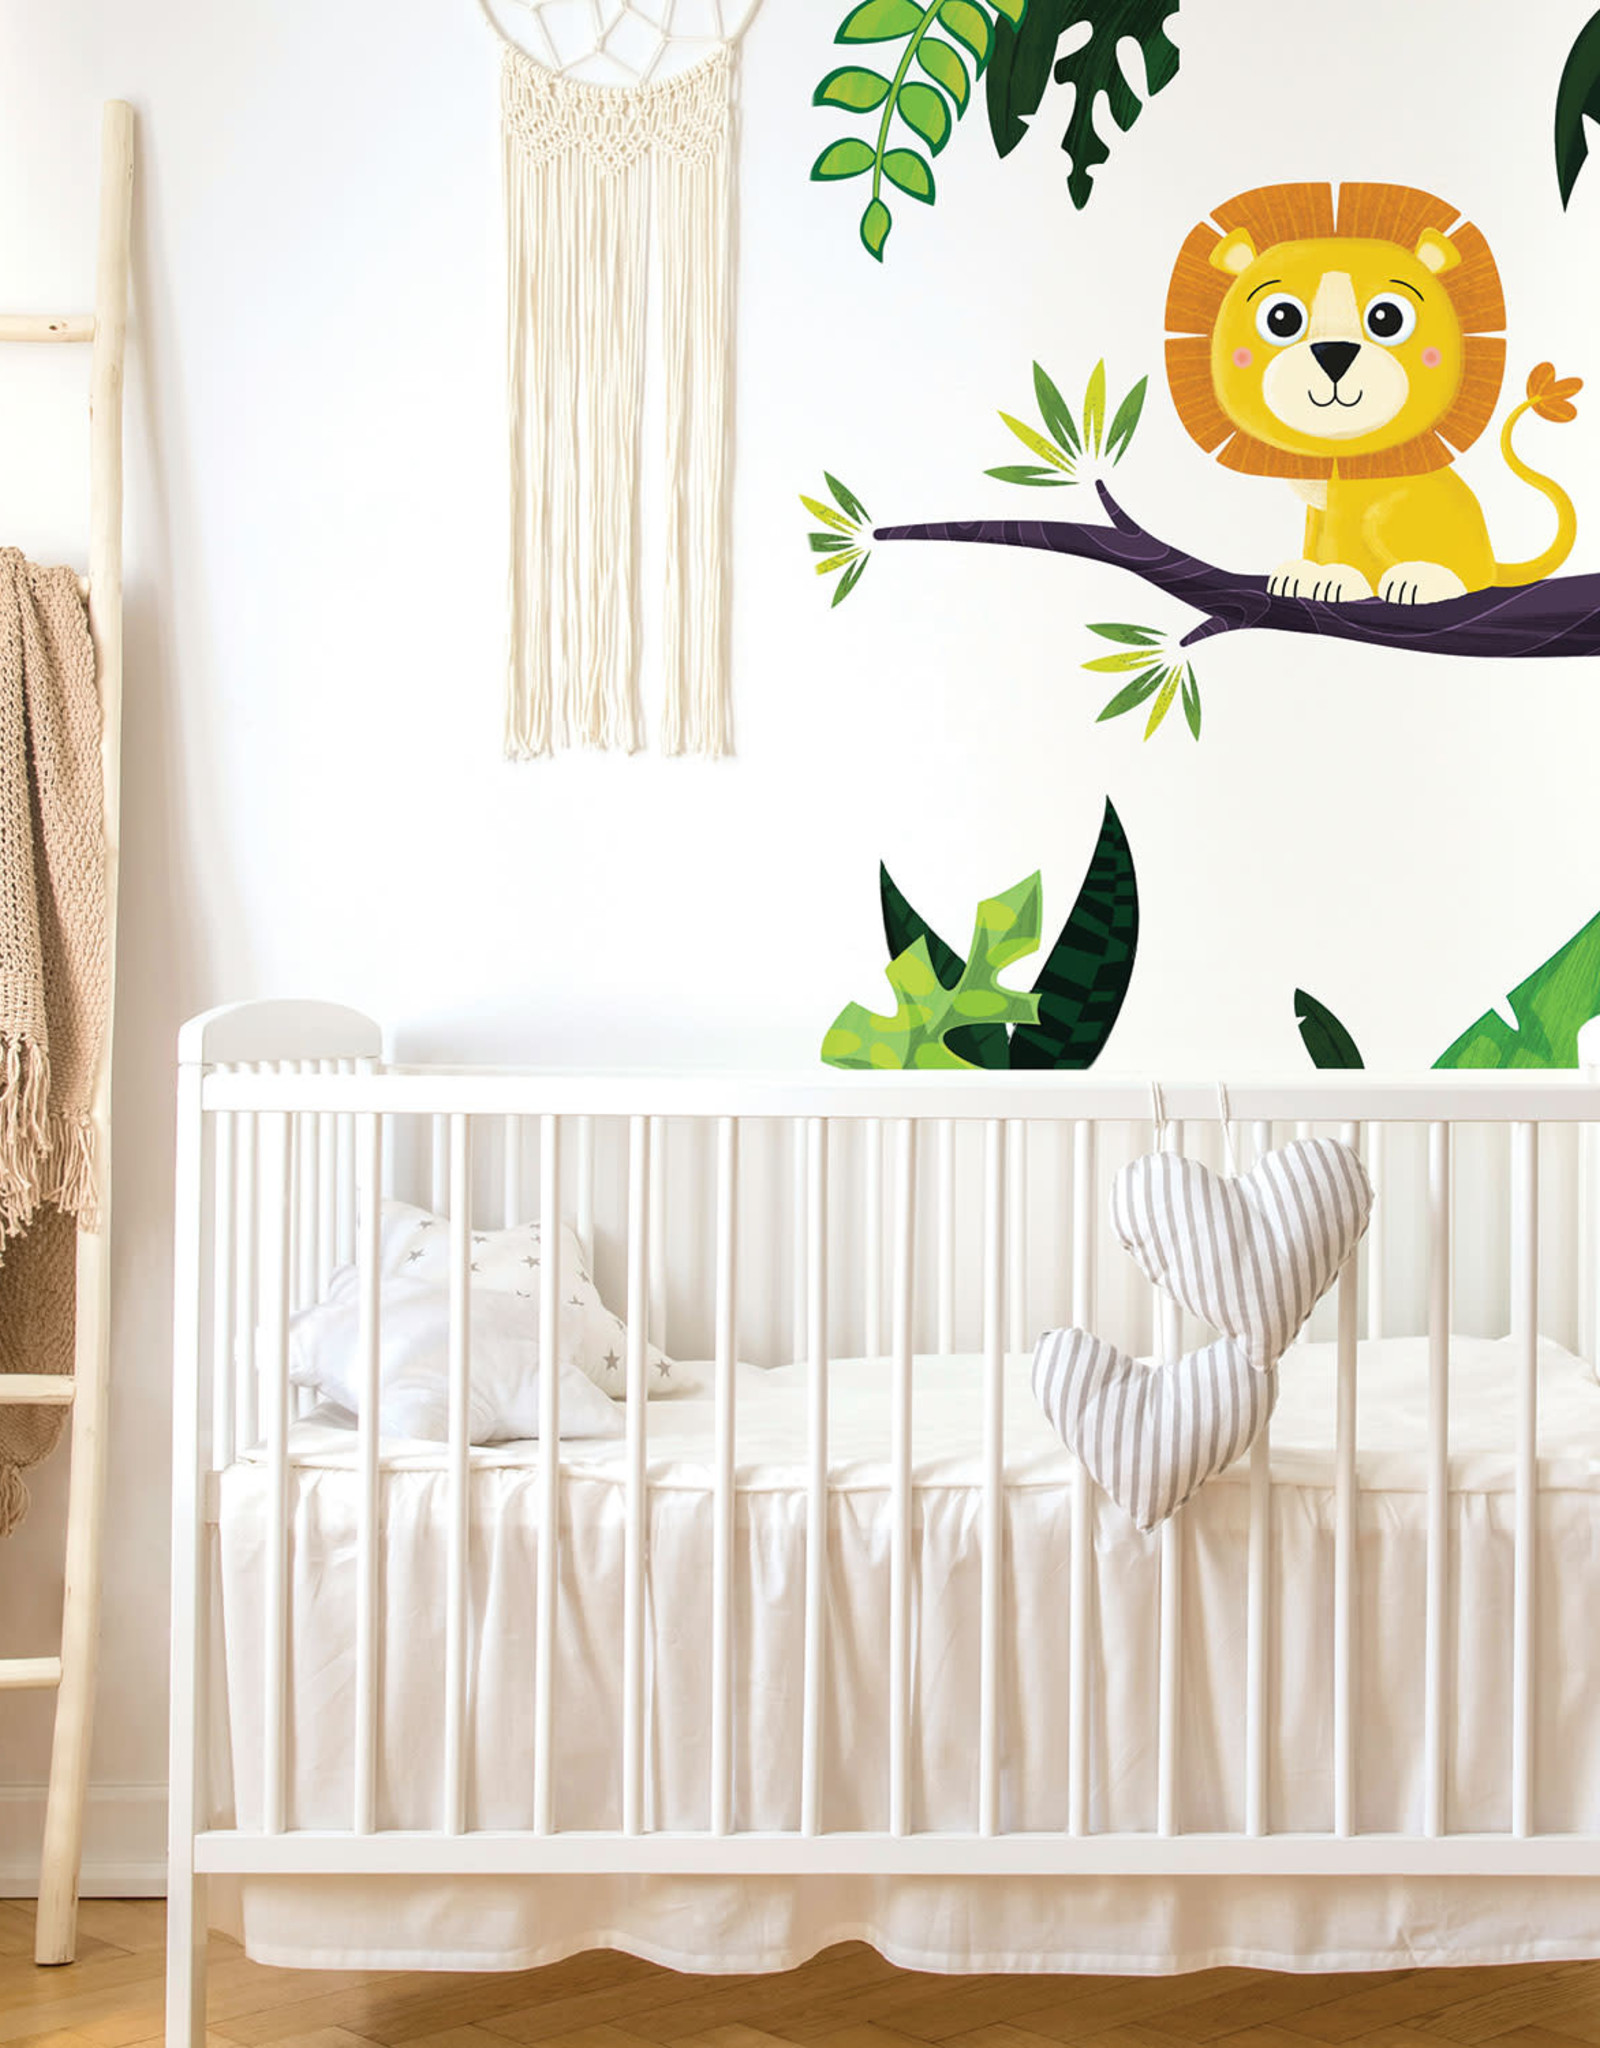 Veille sur toi Wall decal - Marcus the lion